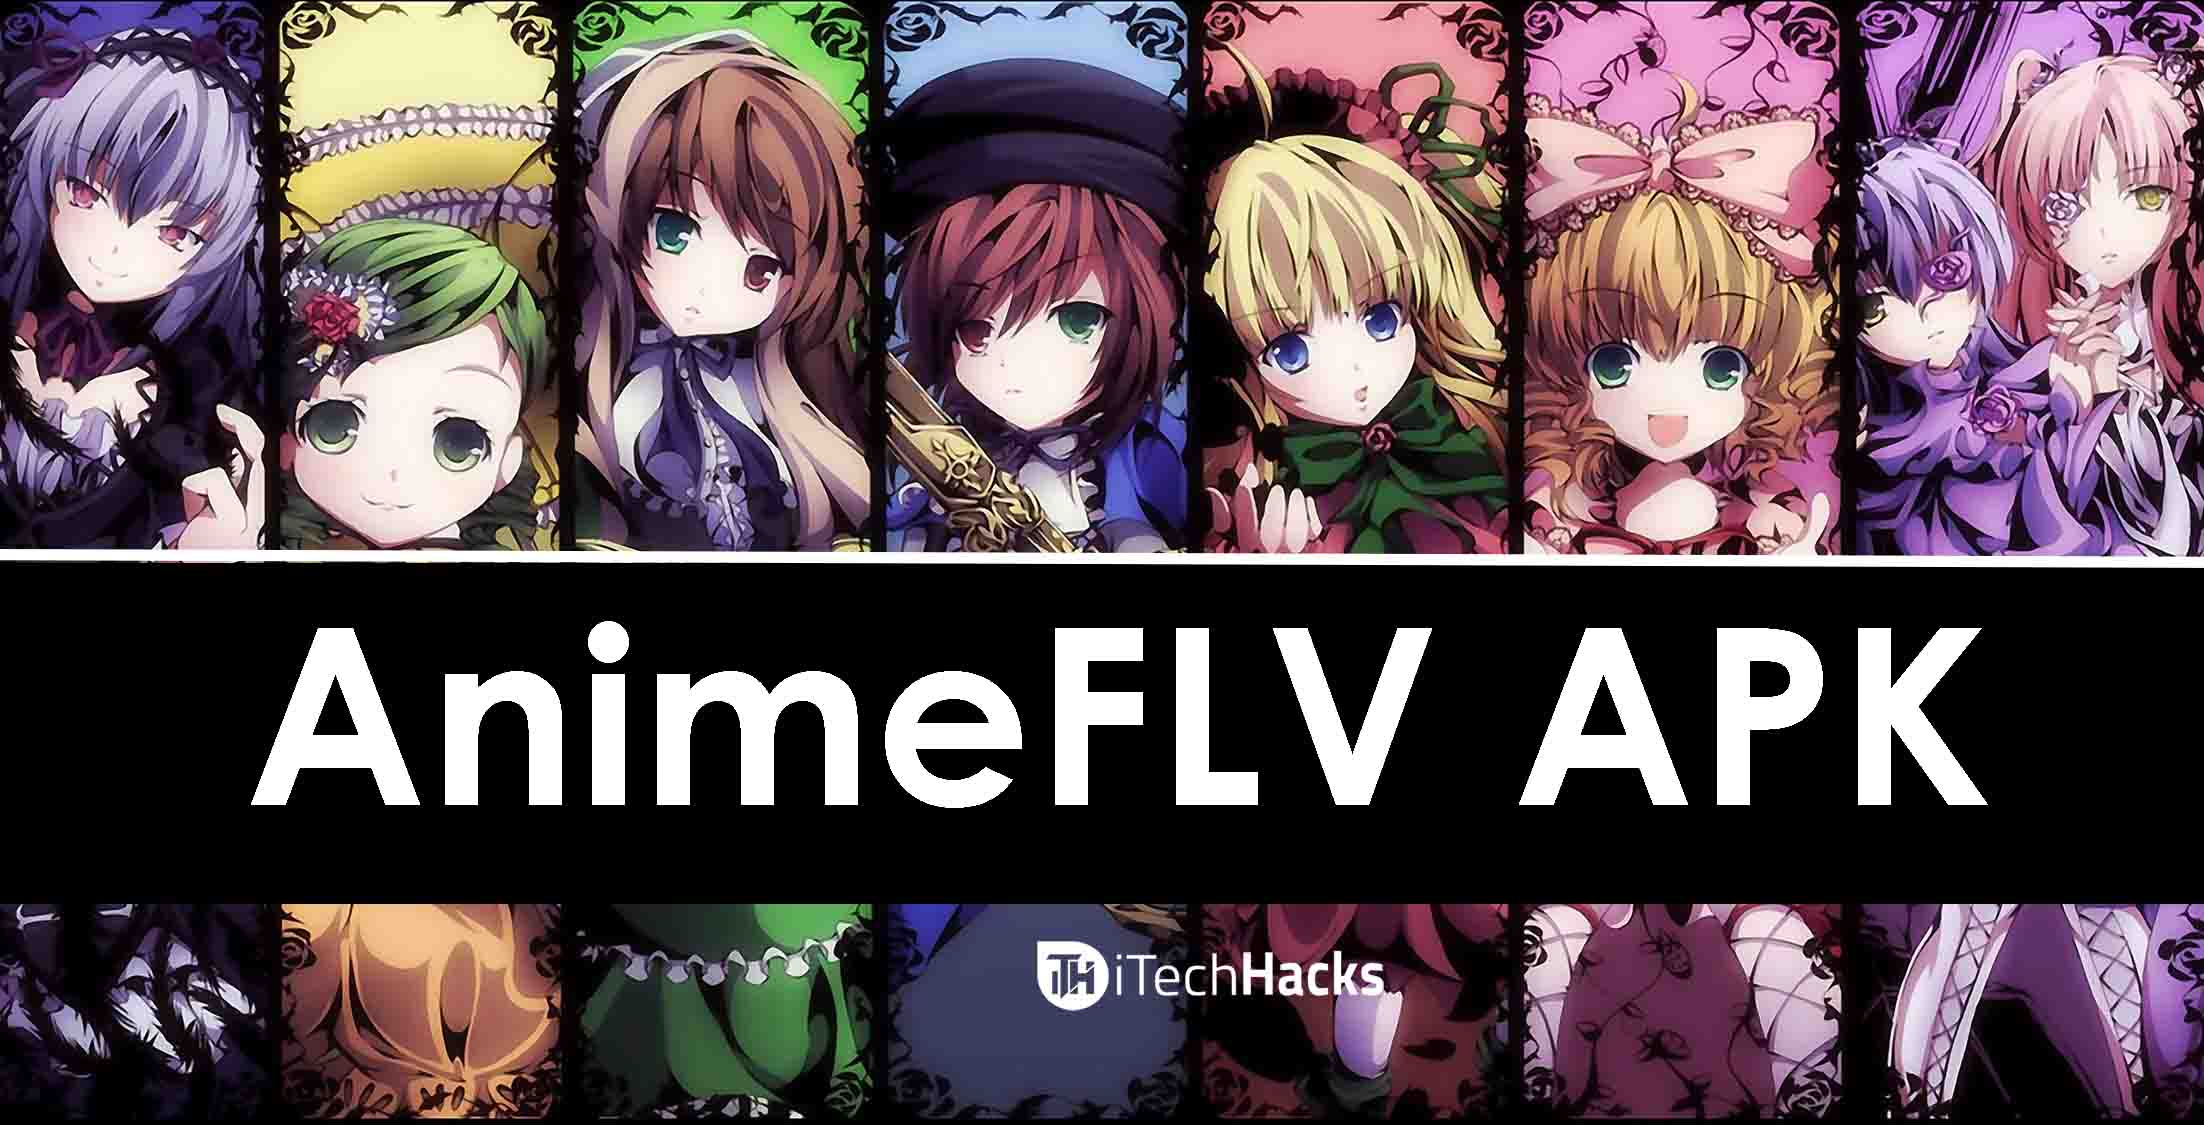 AnimeFlv 2018: Download Latest AnimeFLV APK and Series